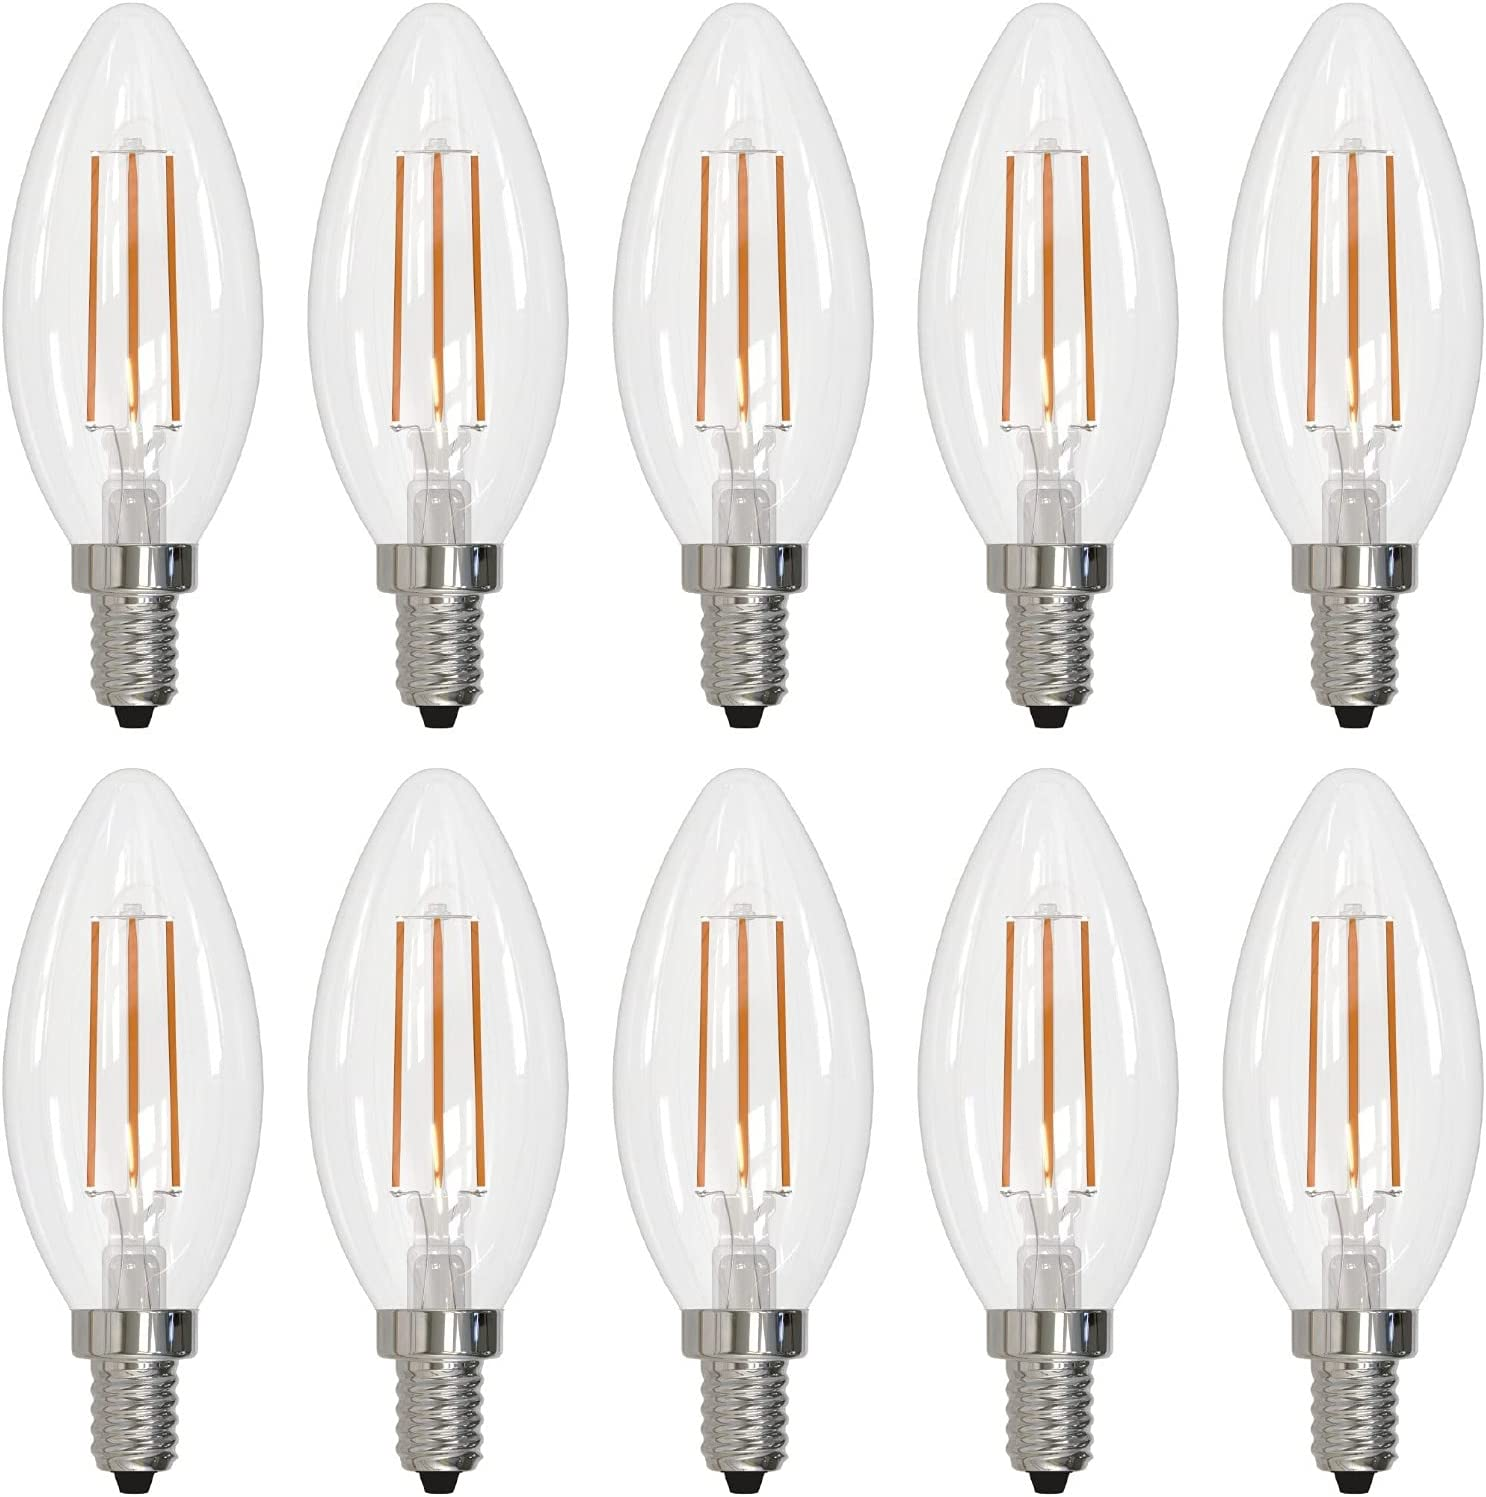 Pack Mail order of 10 Bulbrite Max 49% OFF Item Lumen Higher High Equivalency 776626